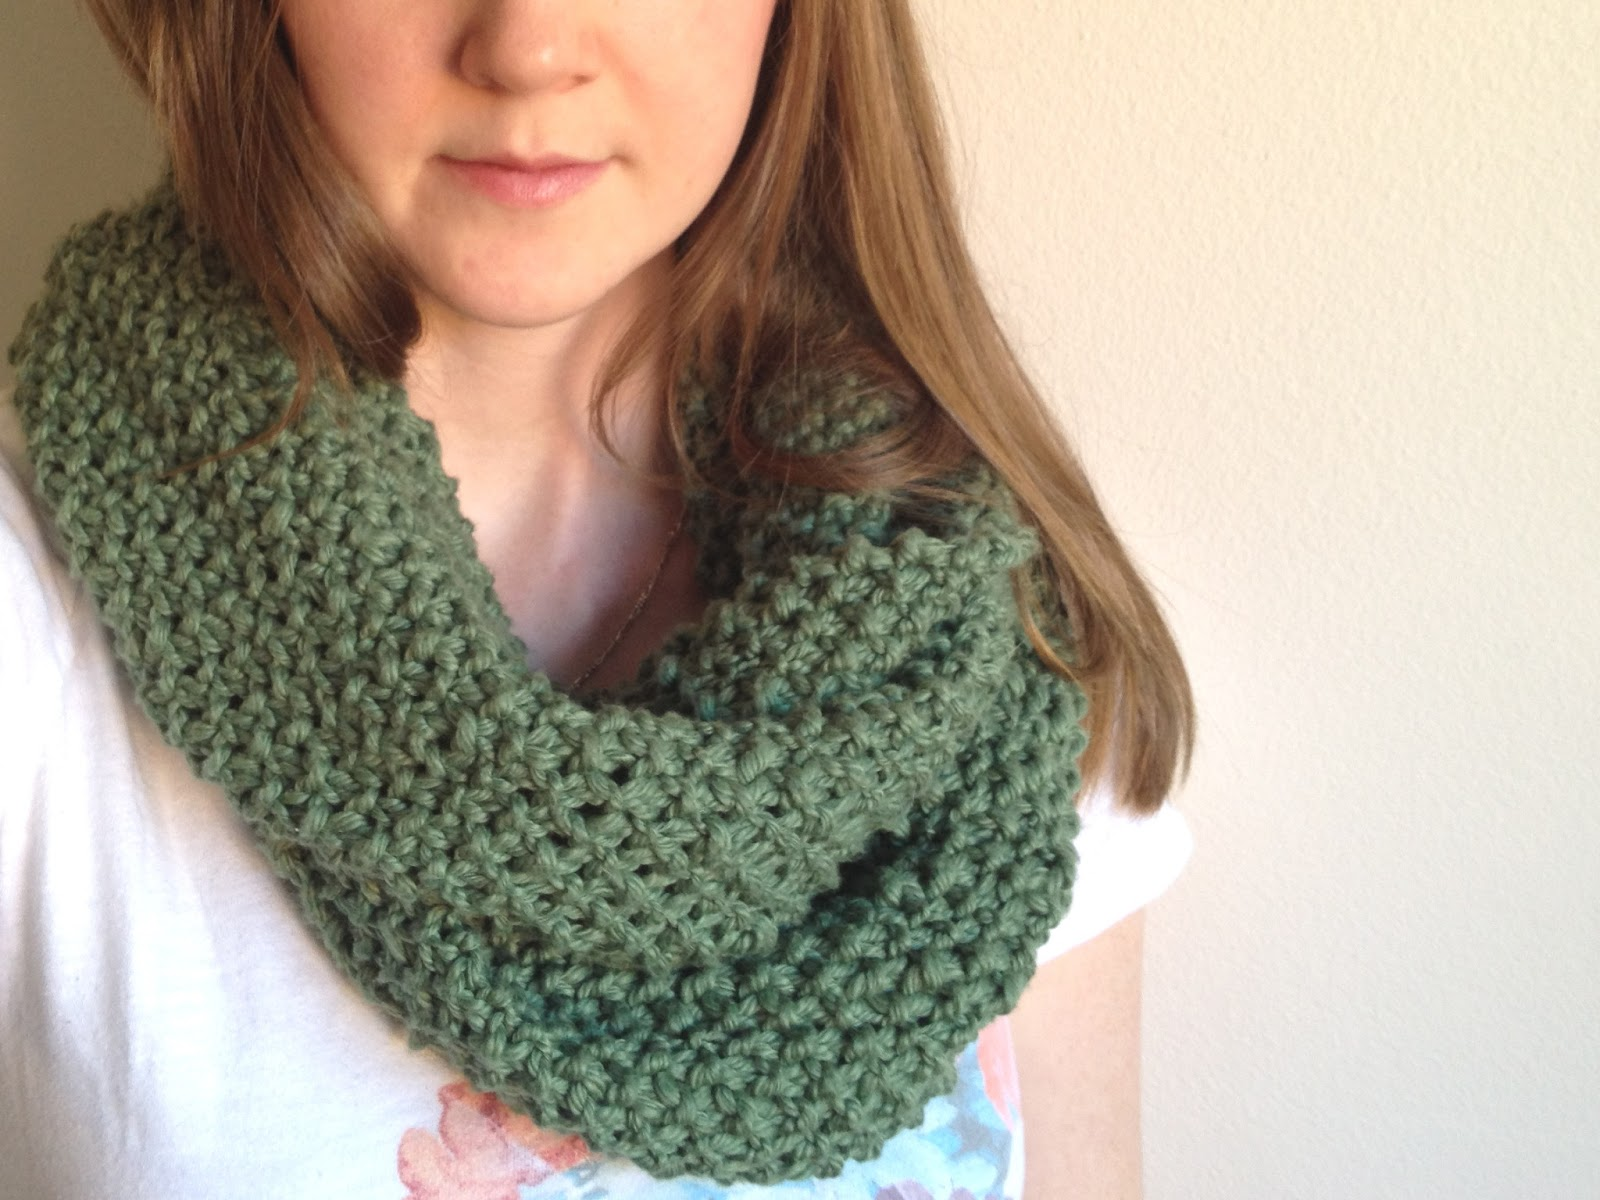 Knitting Scarf Patterns Infinity Scarf : Tinselmint: free infinity scarf pattern for beginners